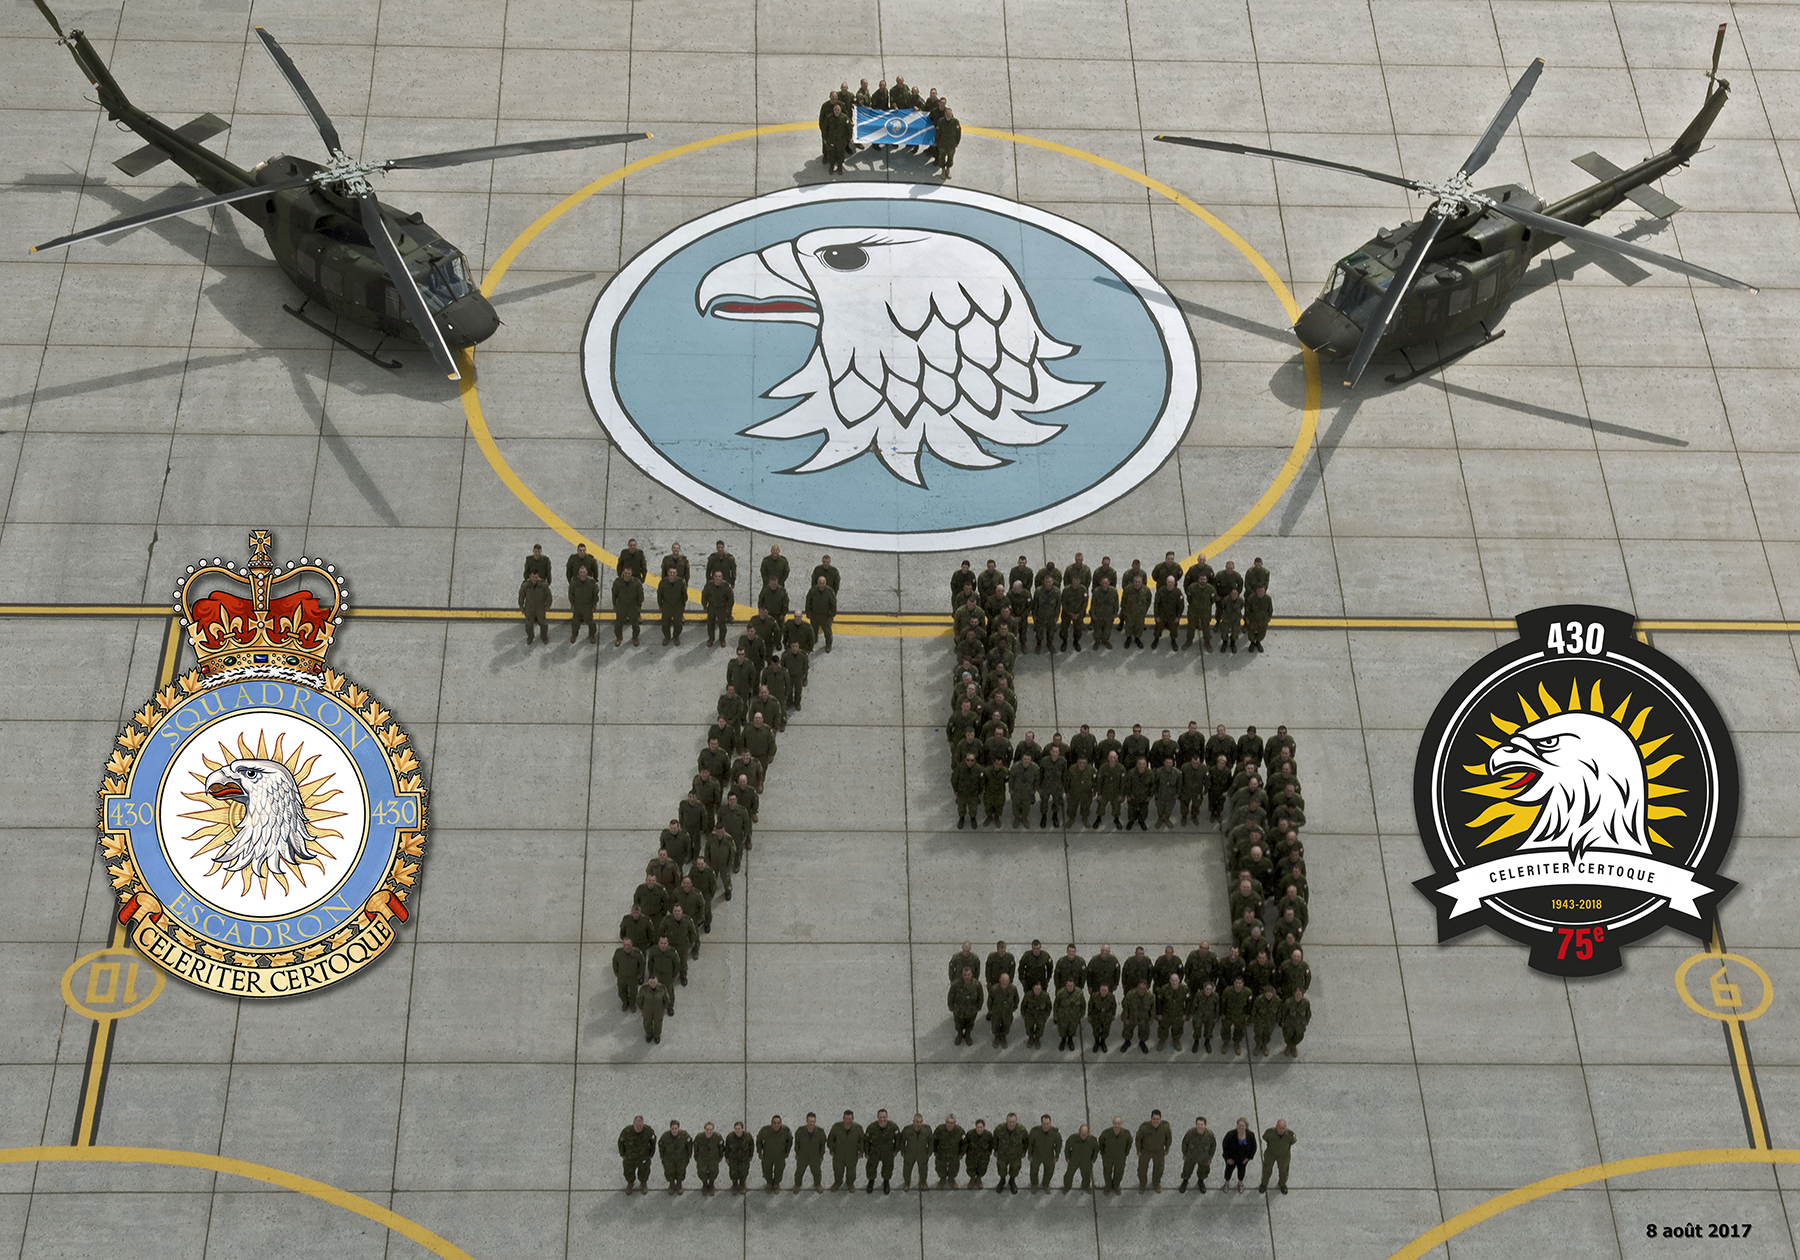 "People in green or disruptive pattern uniforms stand on tarmac so as to spell out ""75"". Behind are two helicopters, 13 people holding a blue and white flag, and a blue and white gyrfalcon's head badge."